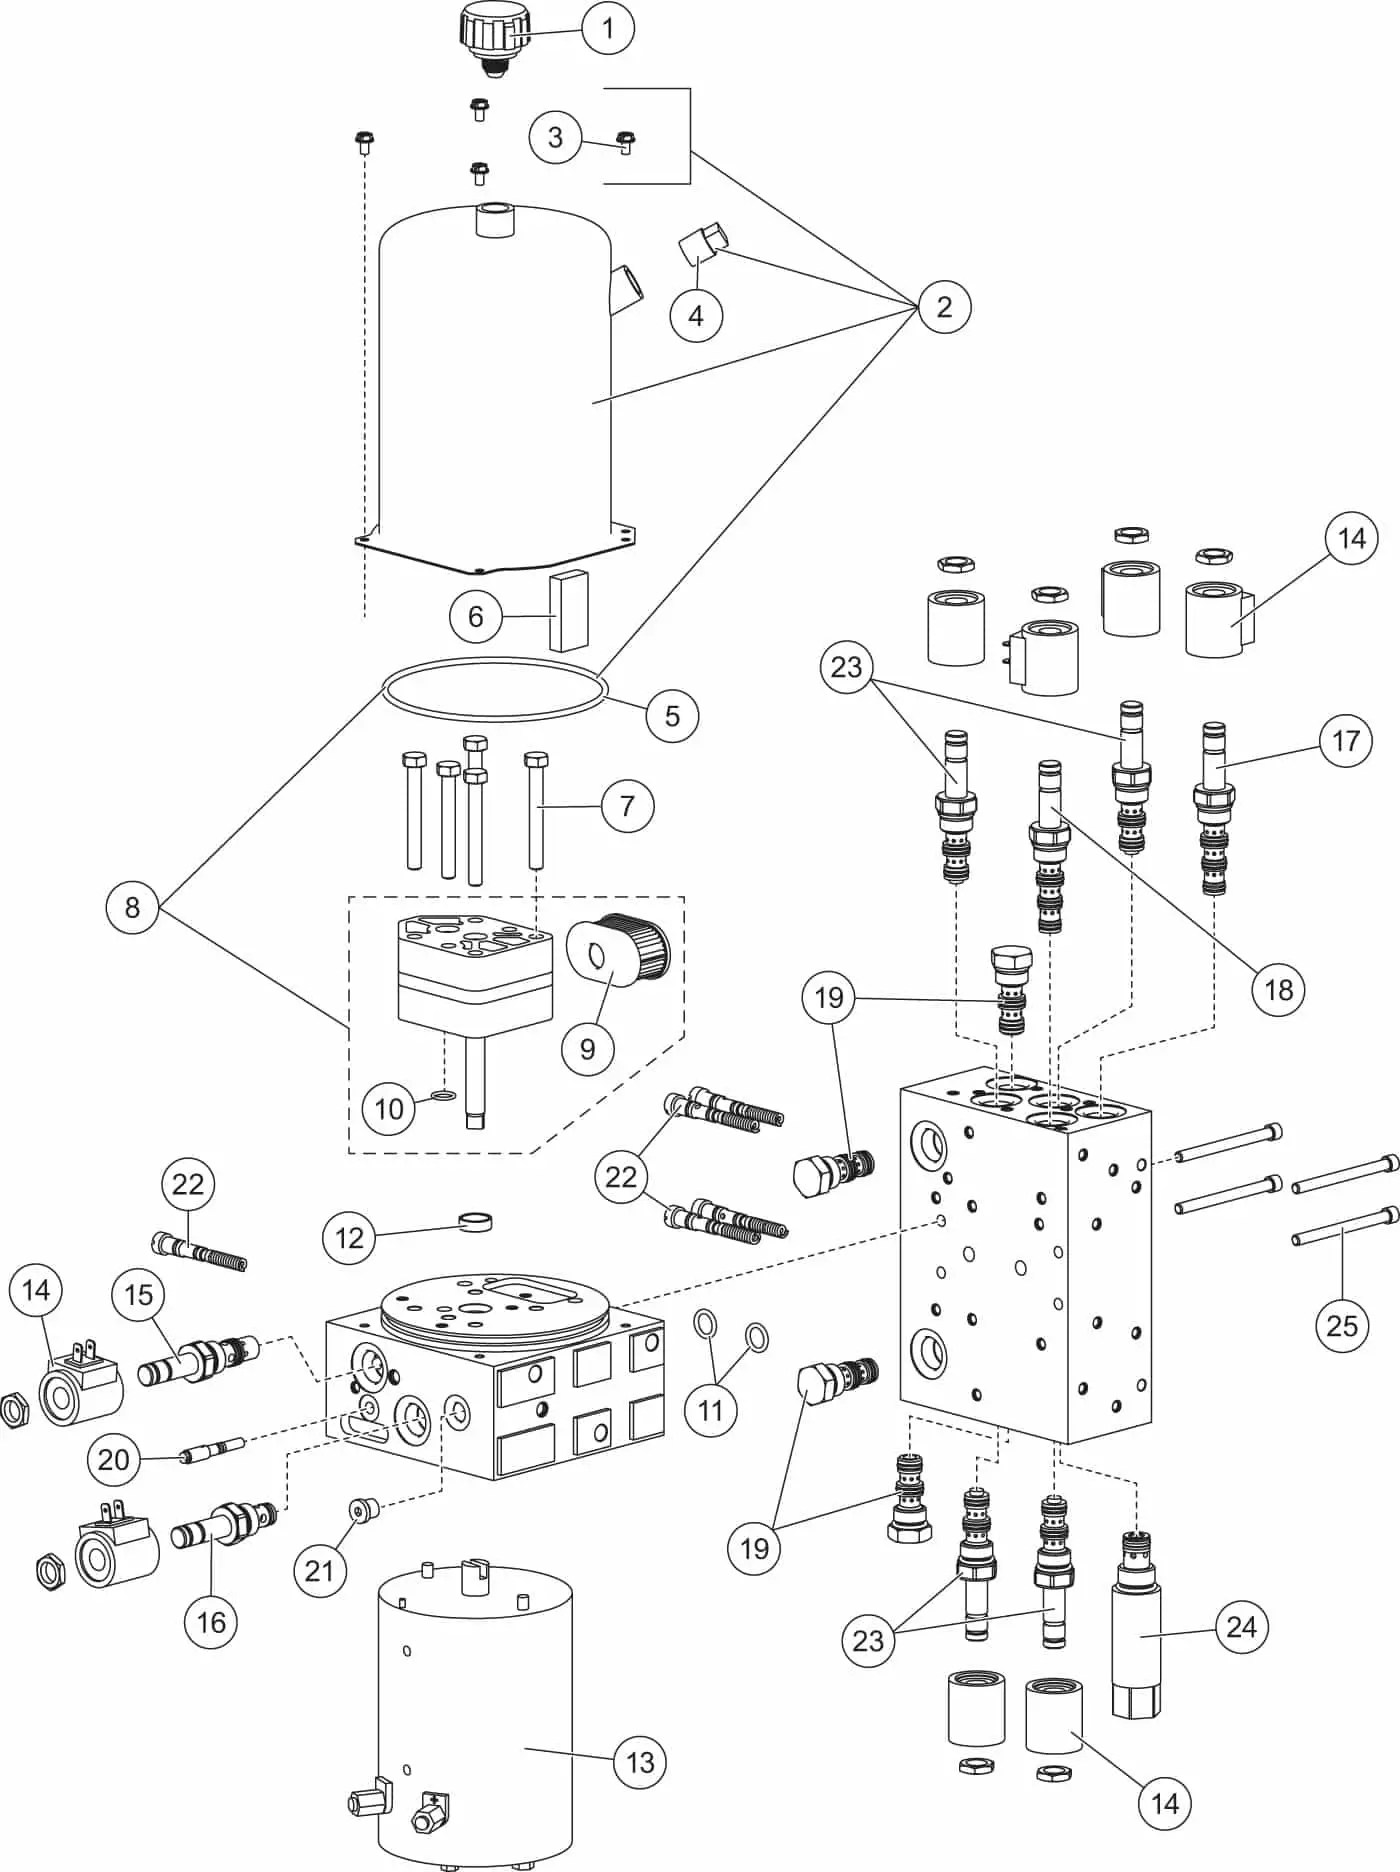 Western Plow Solenoid Wiring Diagram from i1.wp.com